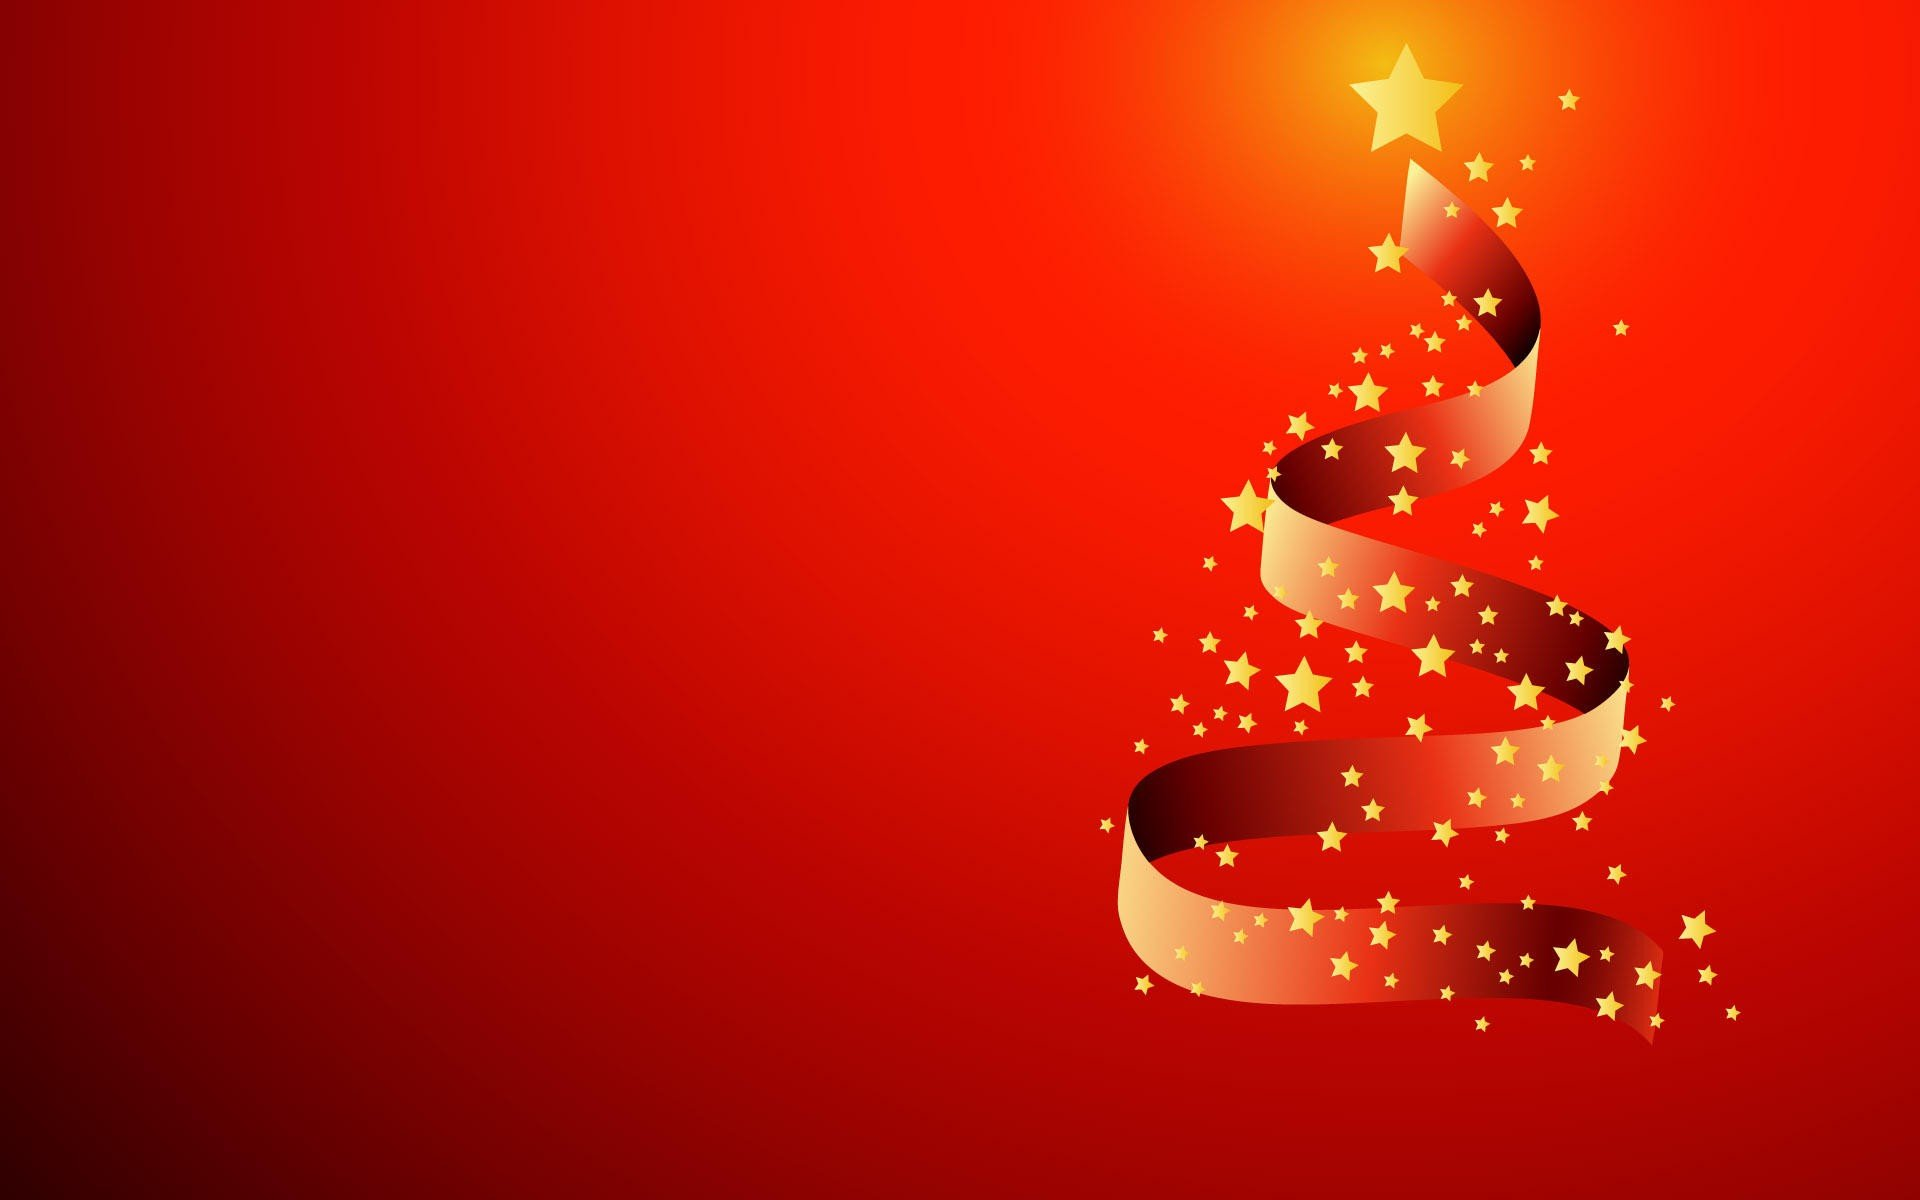 Christmas Background Pictures Wallpapers9 1920x1200